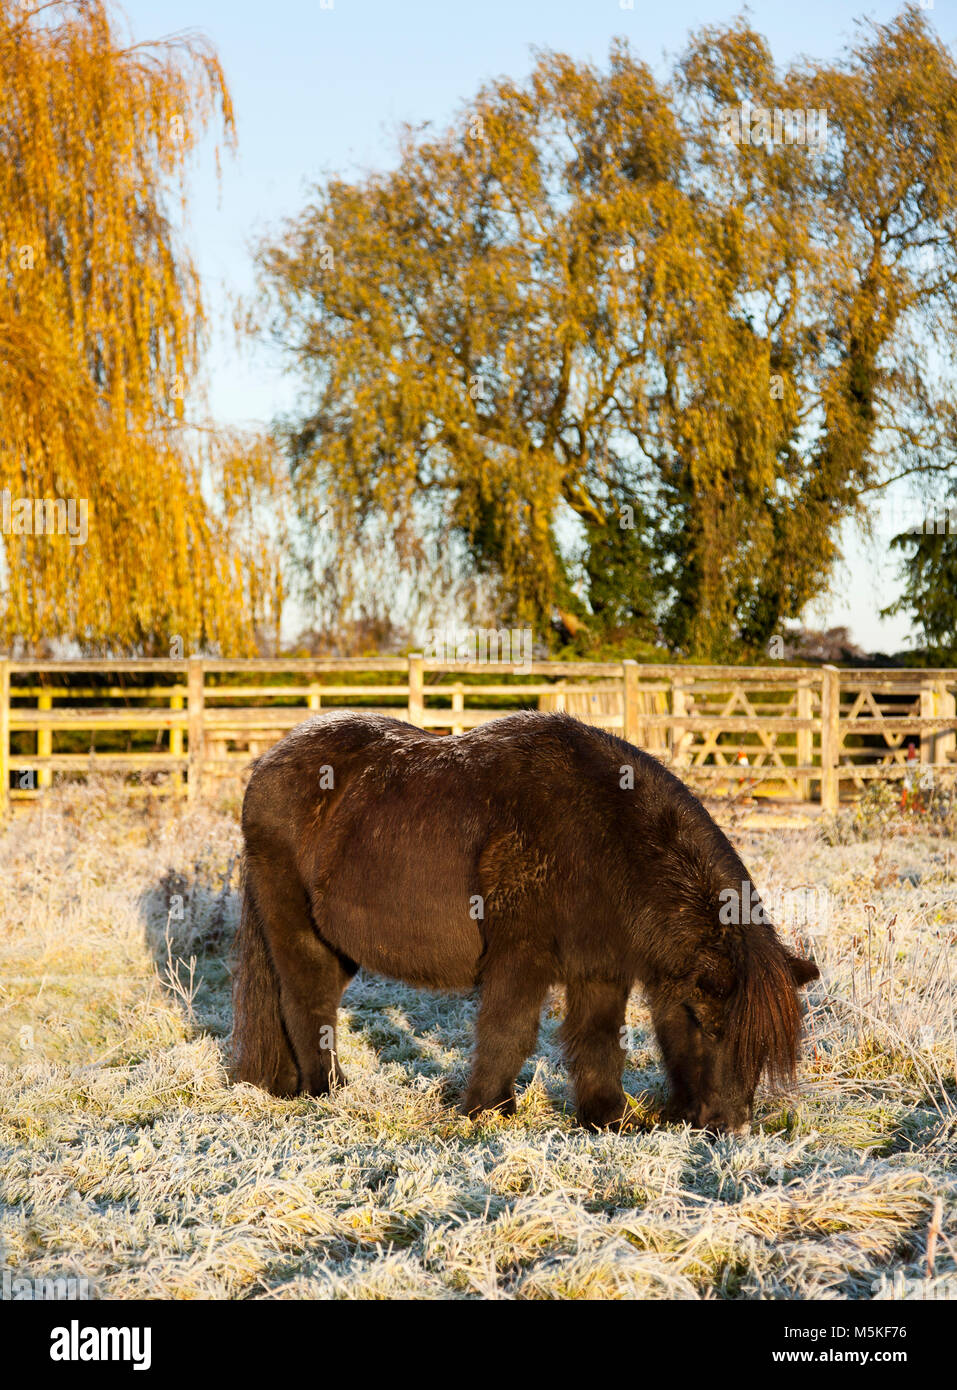 A pony grazing on frosted grass in the Autumn - Stock Image